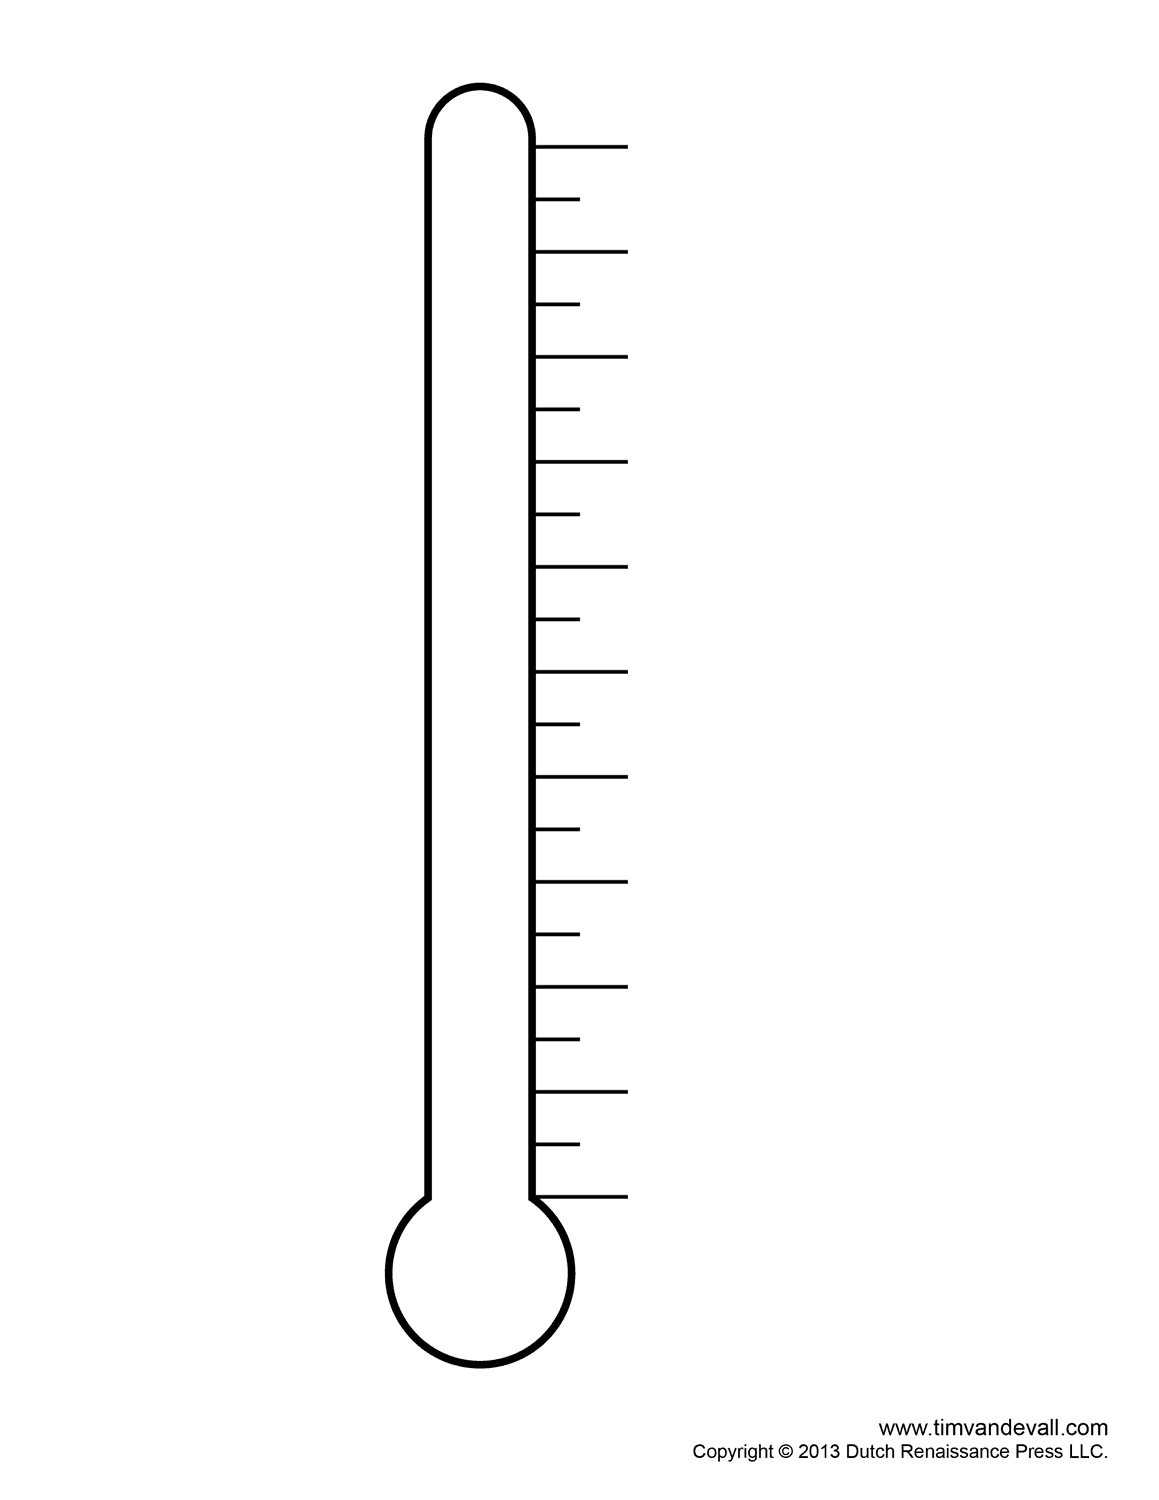 Fundraising Thermometer Template